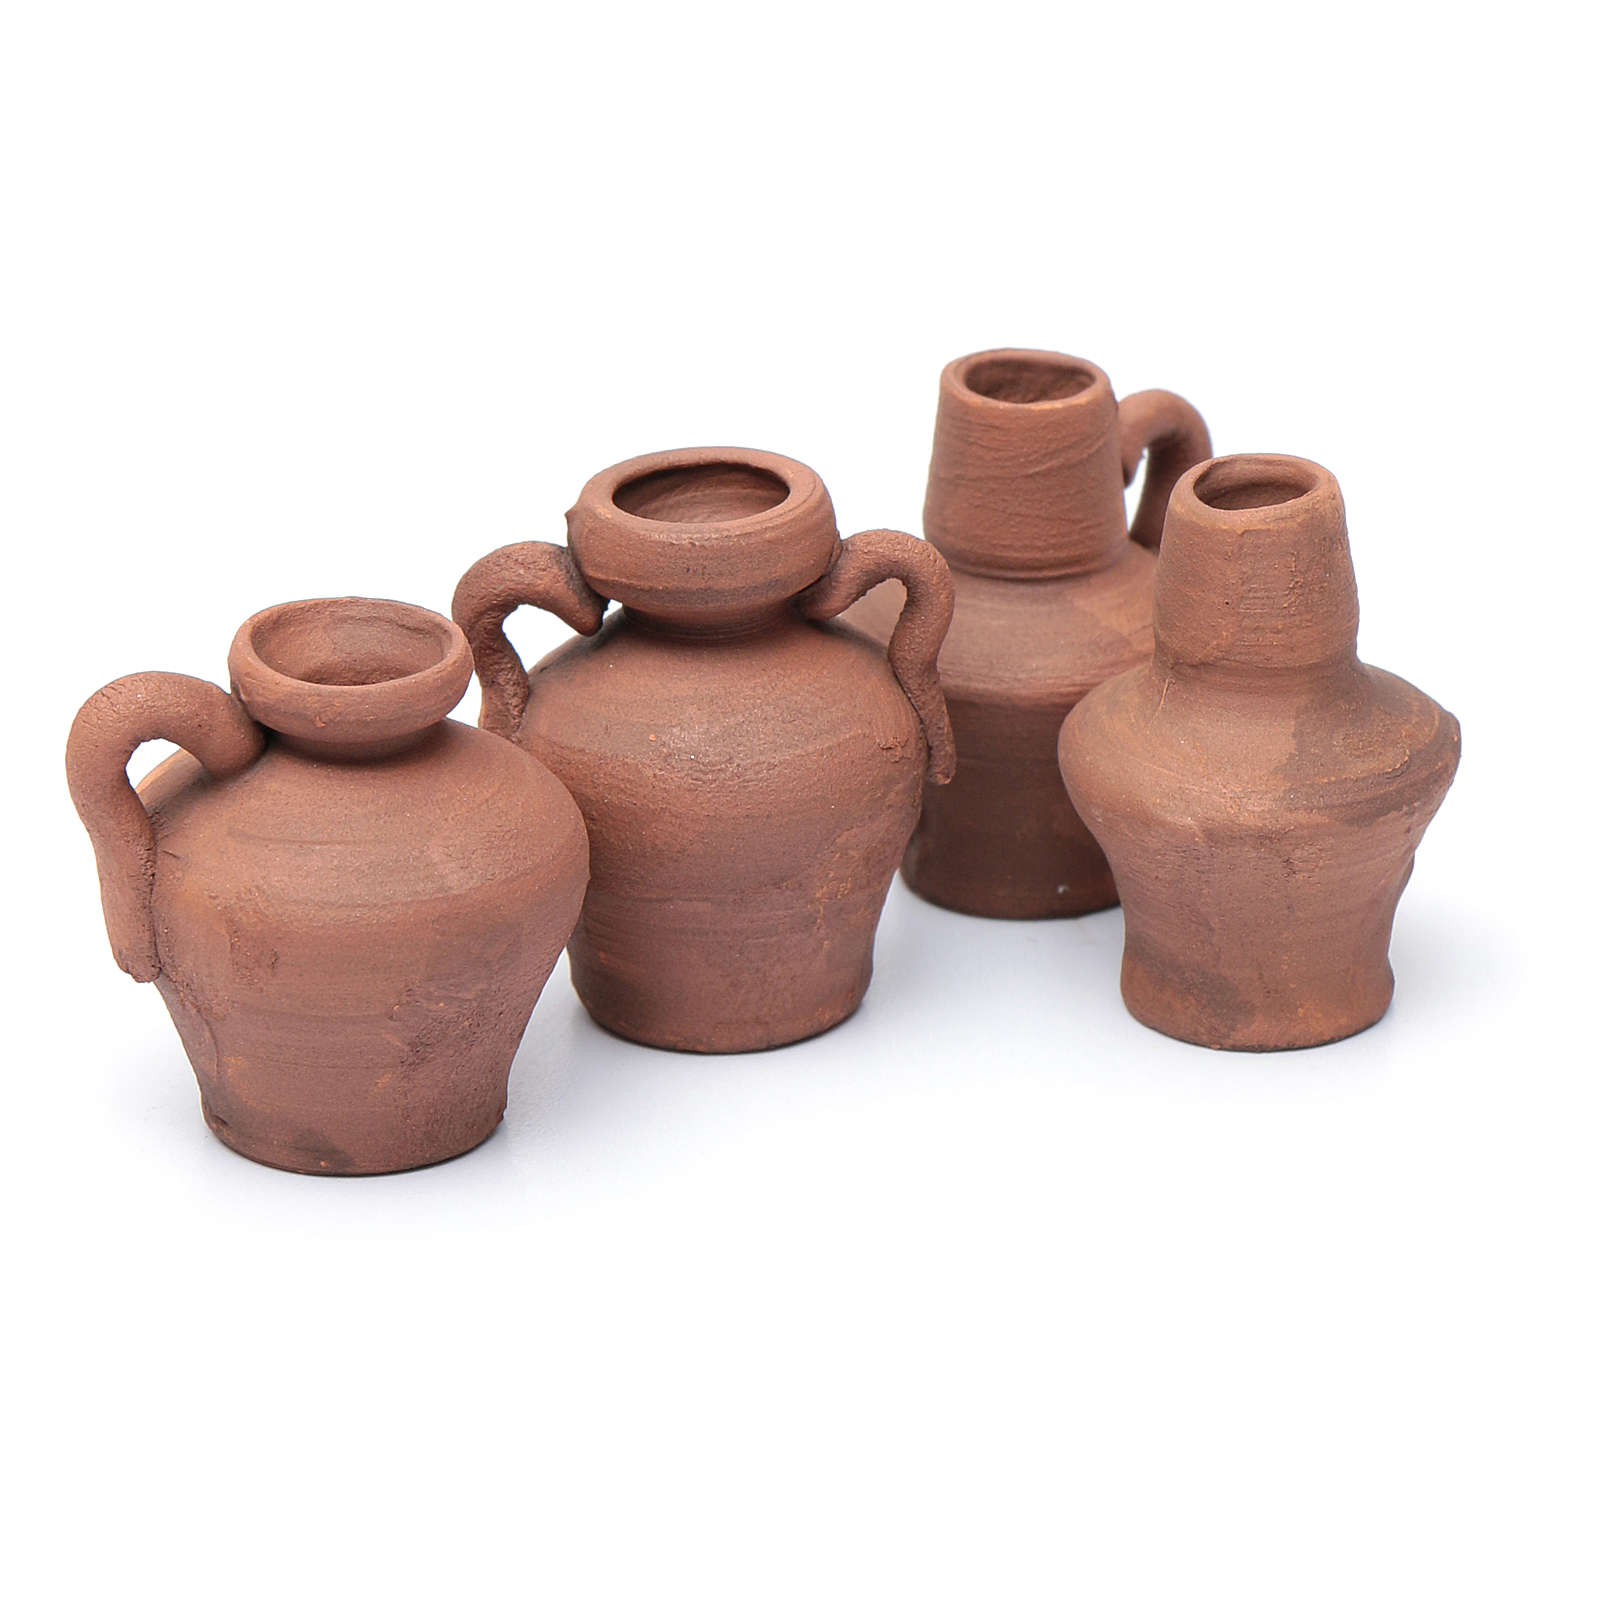 Rustic ceramic amphora 2,5 cm assorted models 4